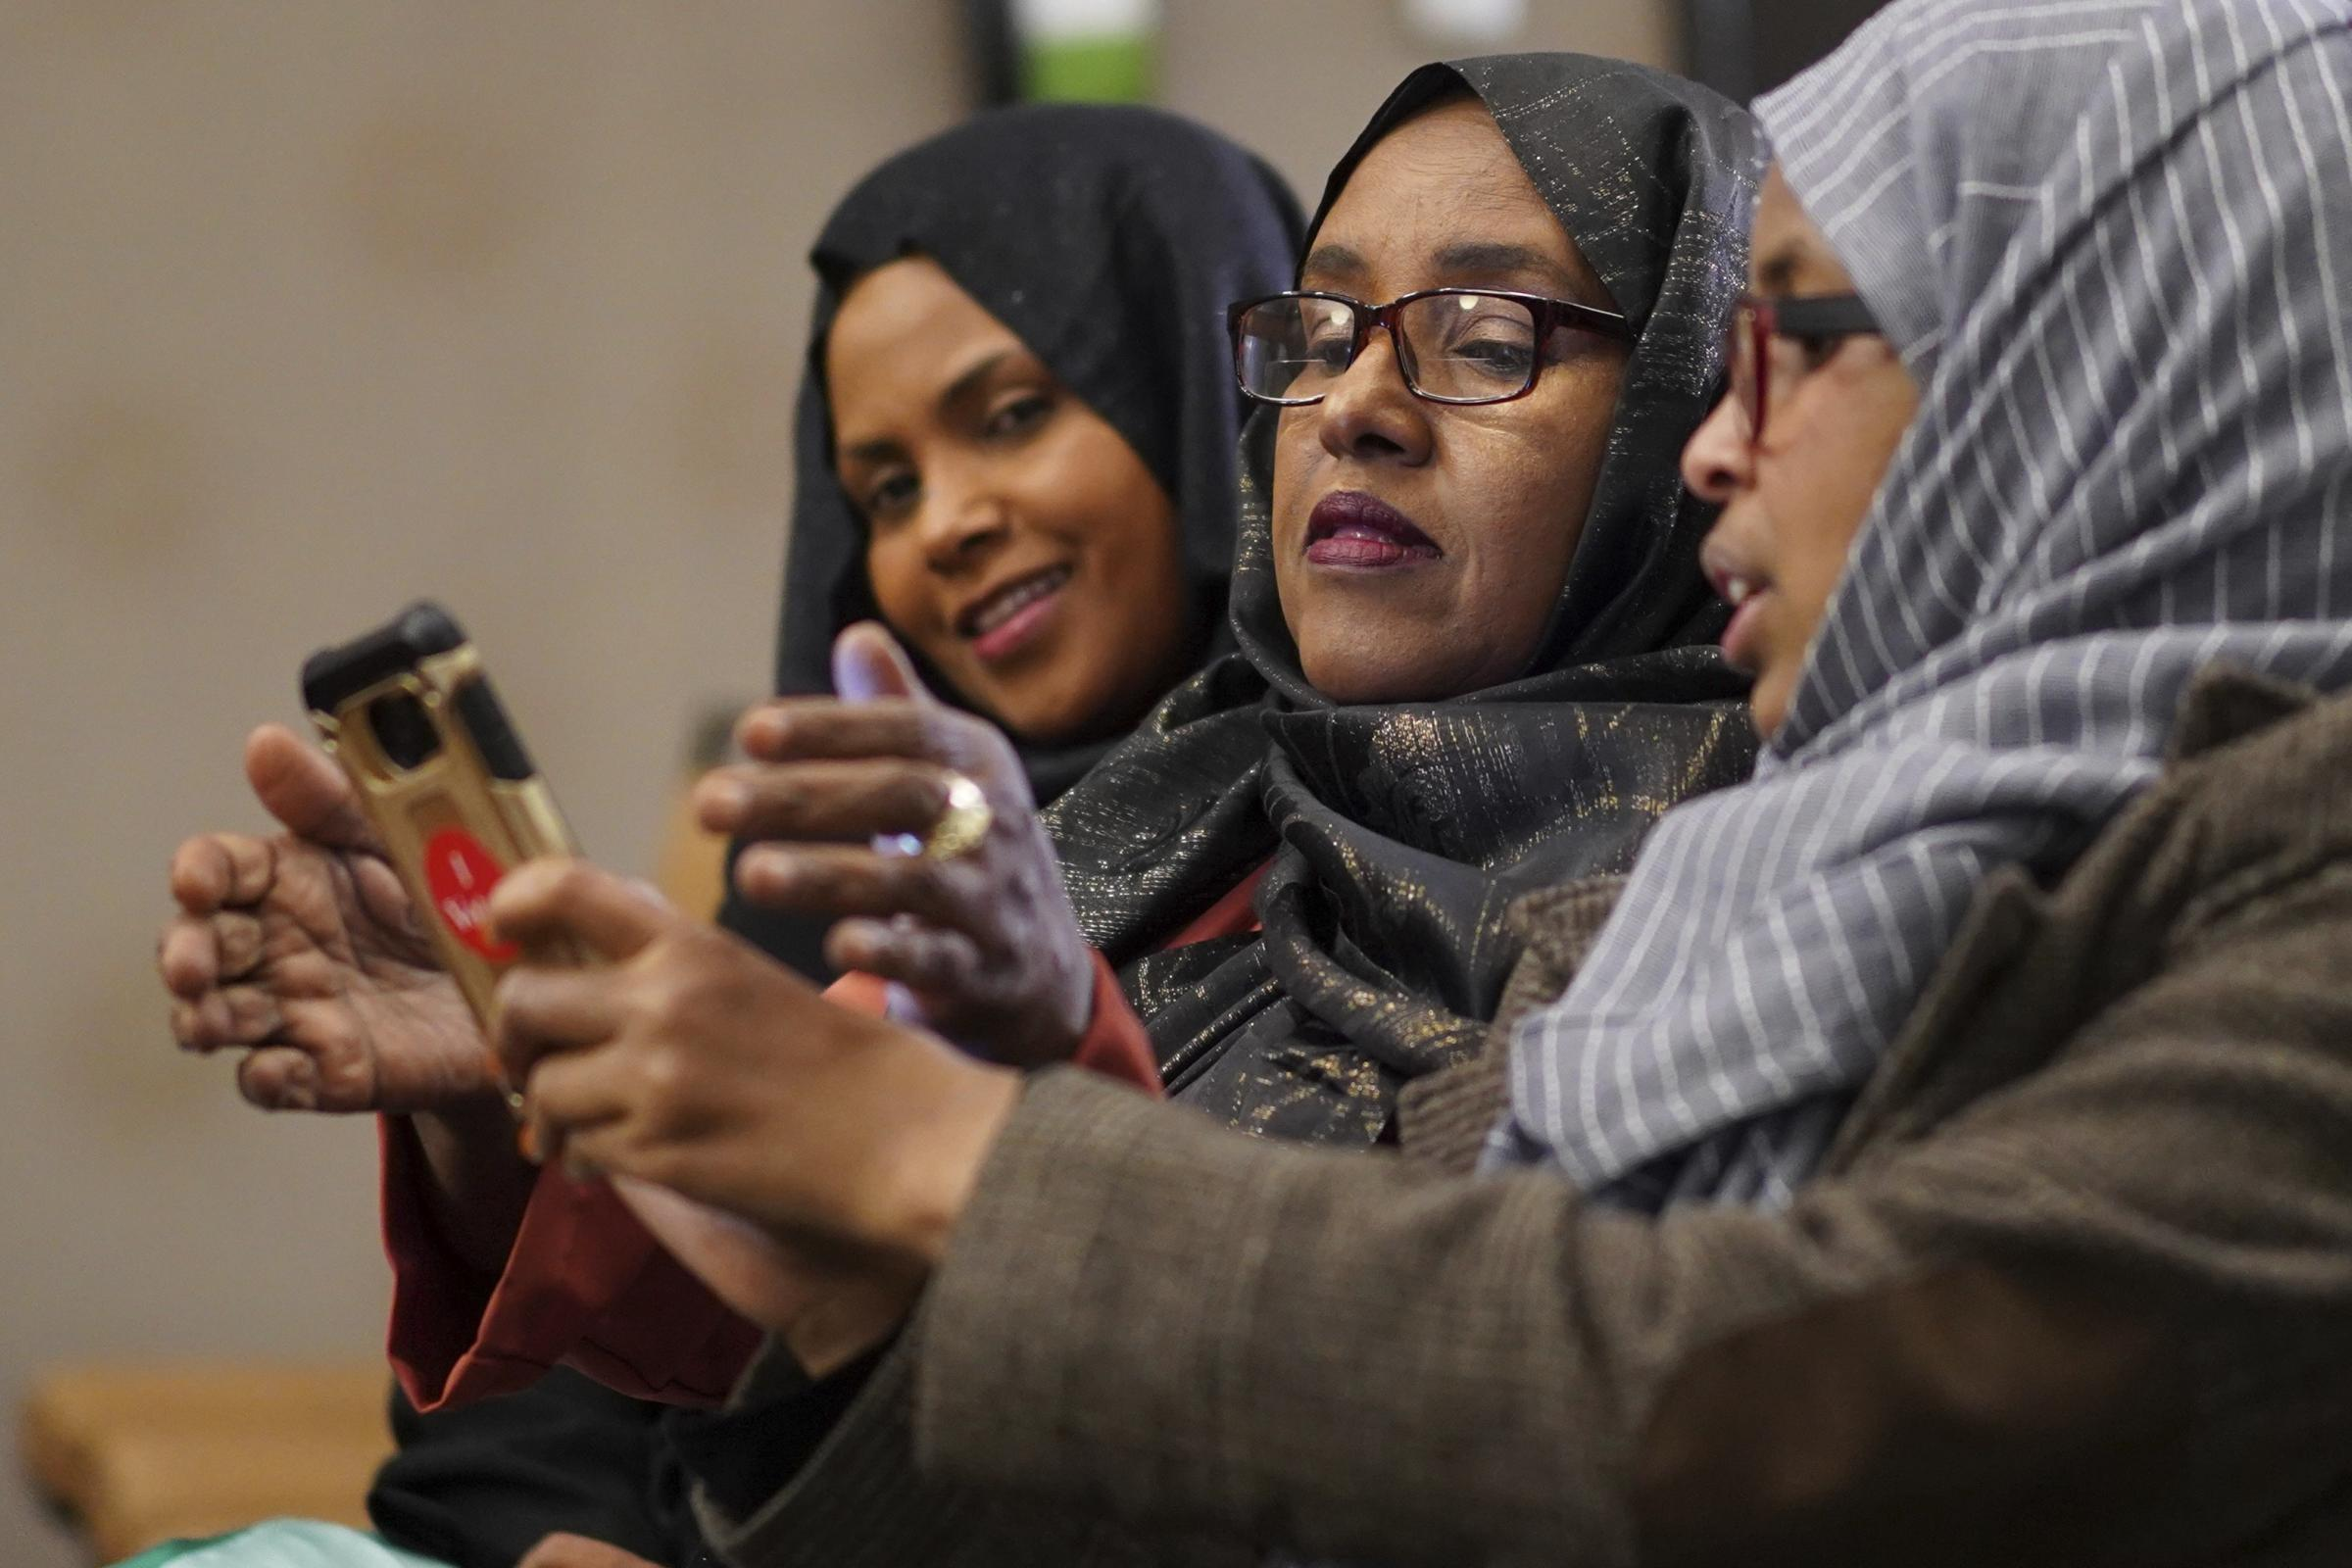 History made as two Muslim women elected to House of Representatives